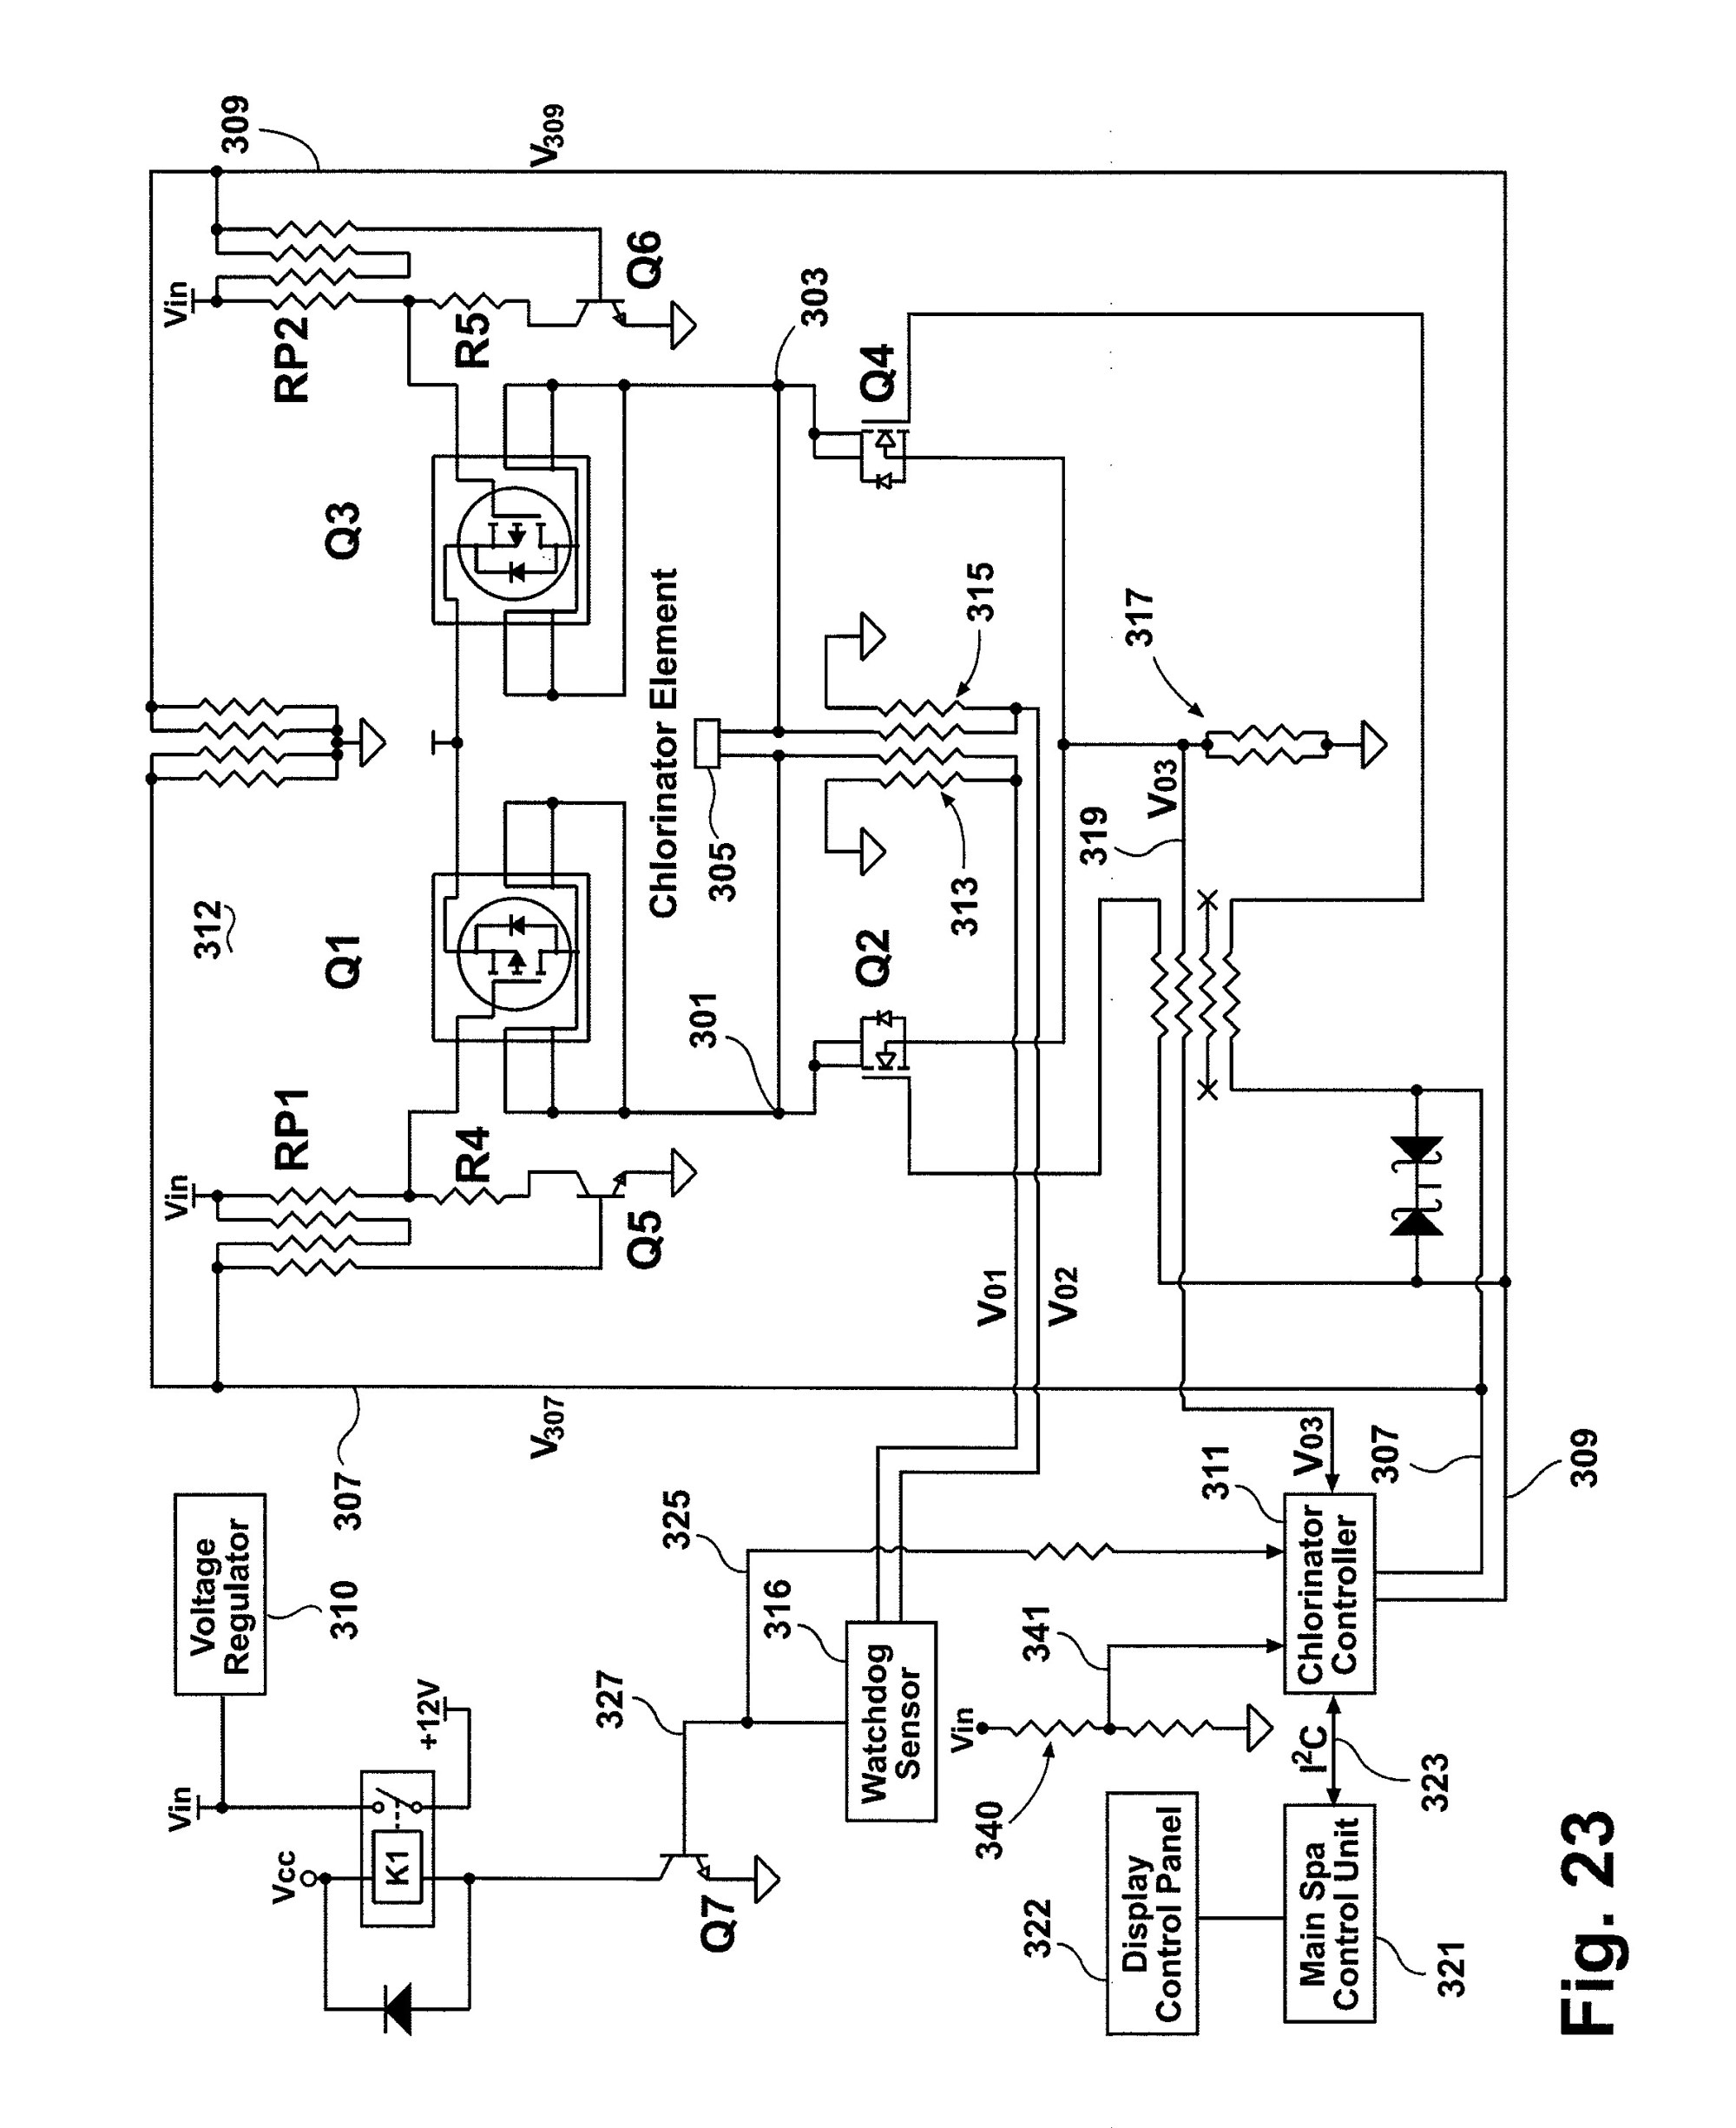 hight resolution of spaguts spa to 220v wiring diagrams wiring diagram meta spa 220 wiring diagram source hl 630